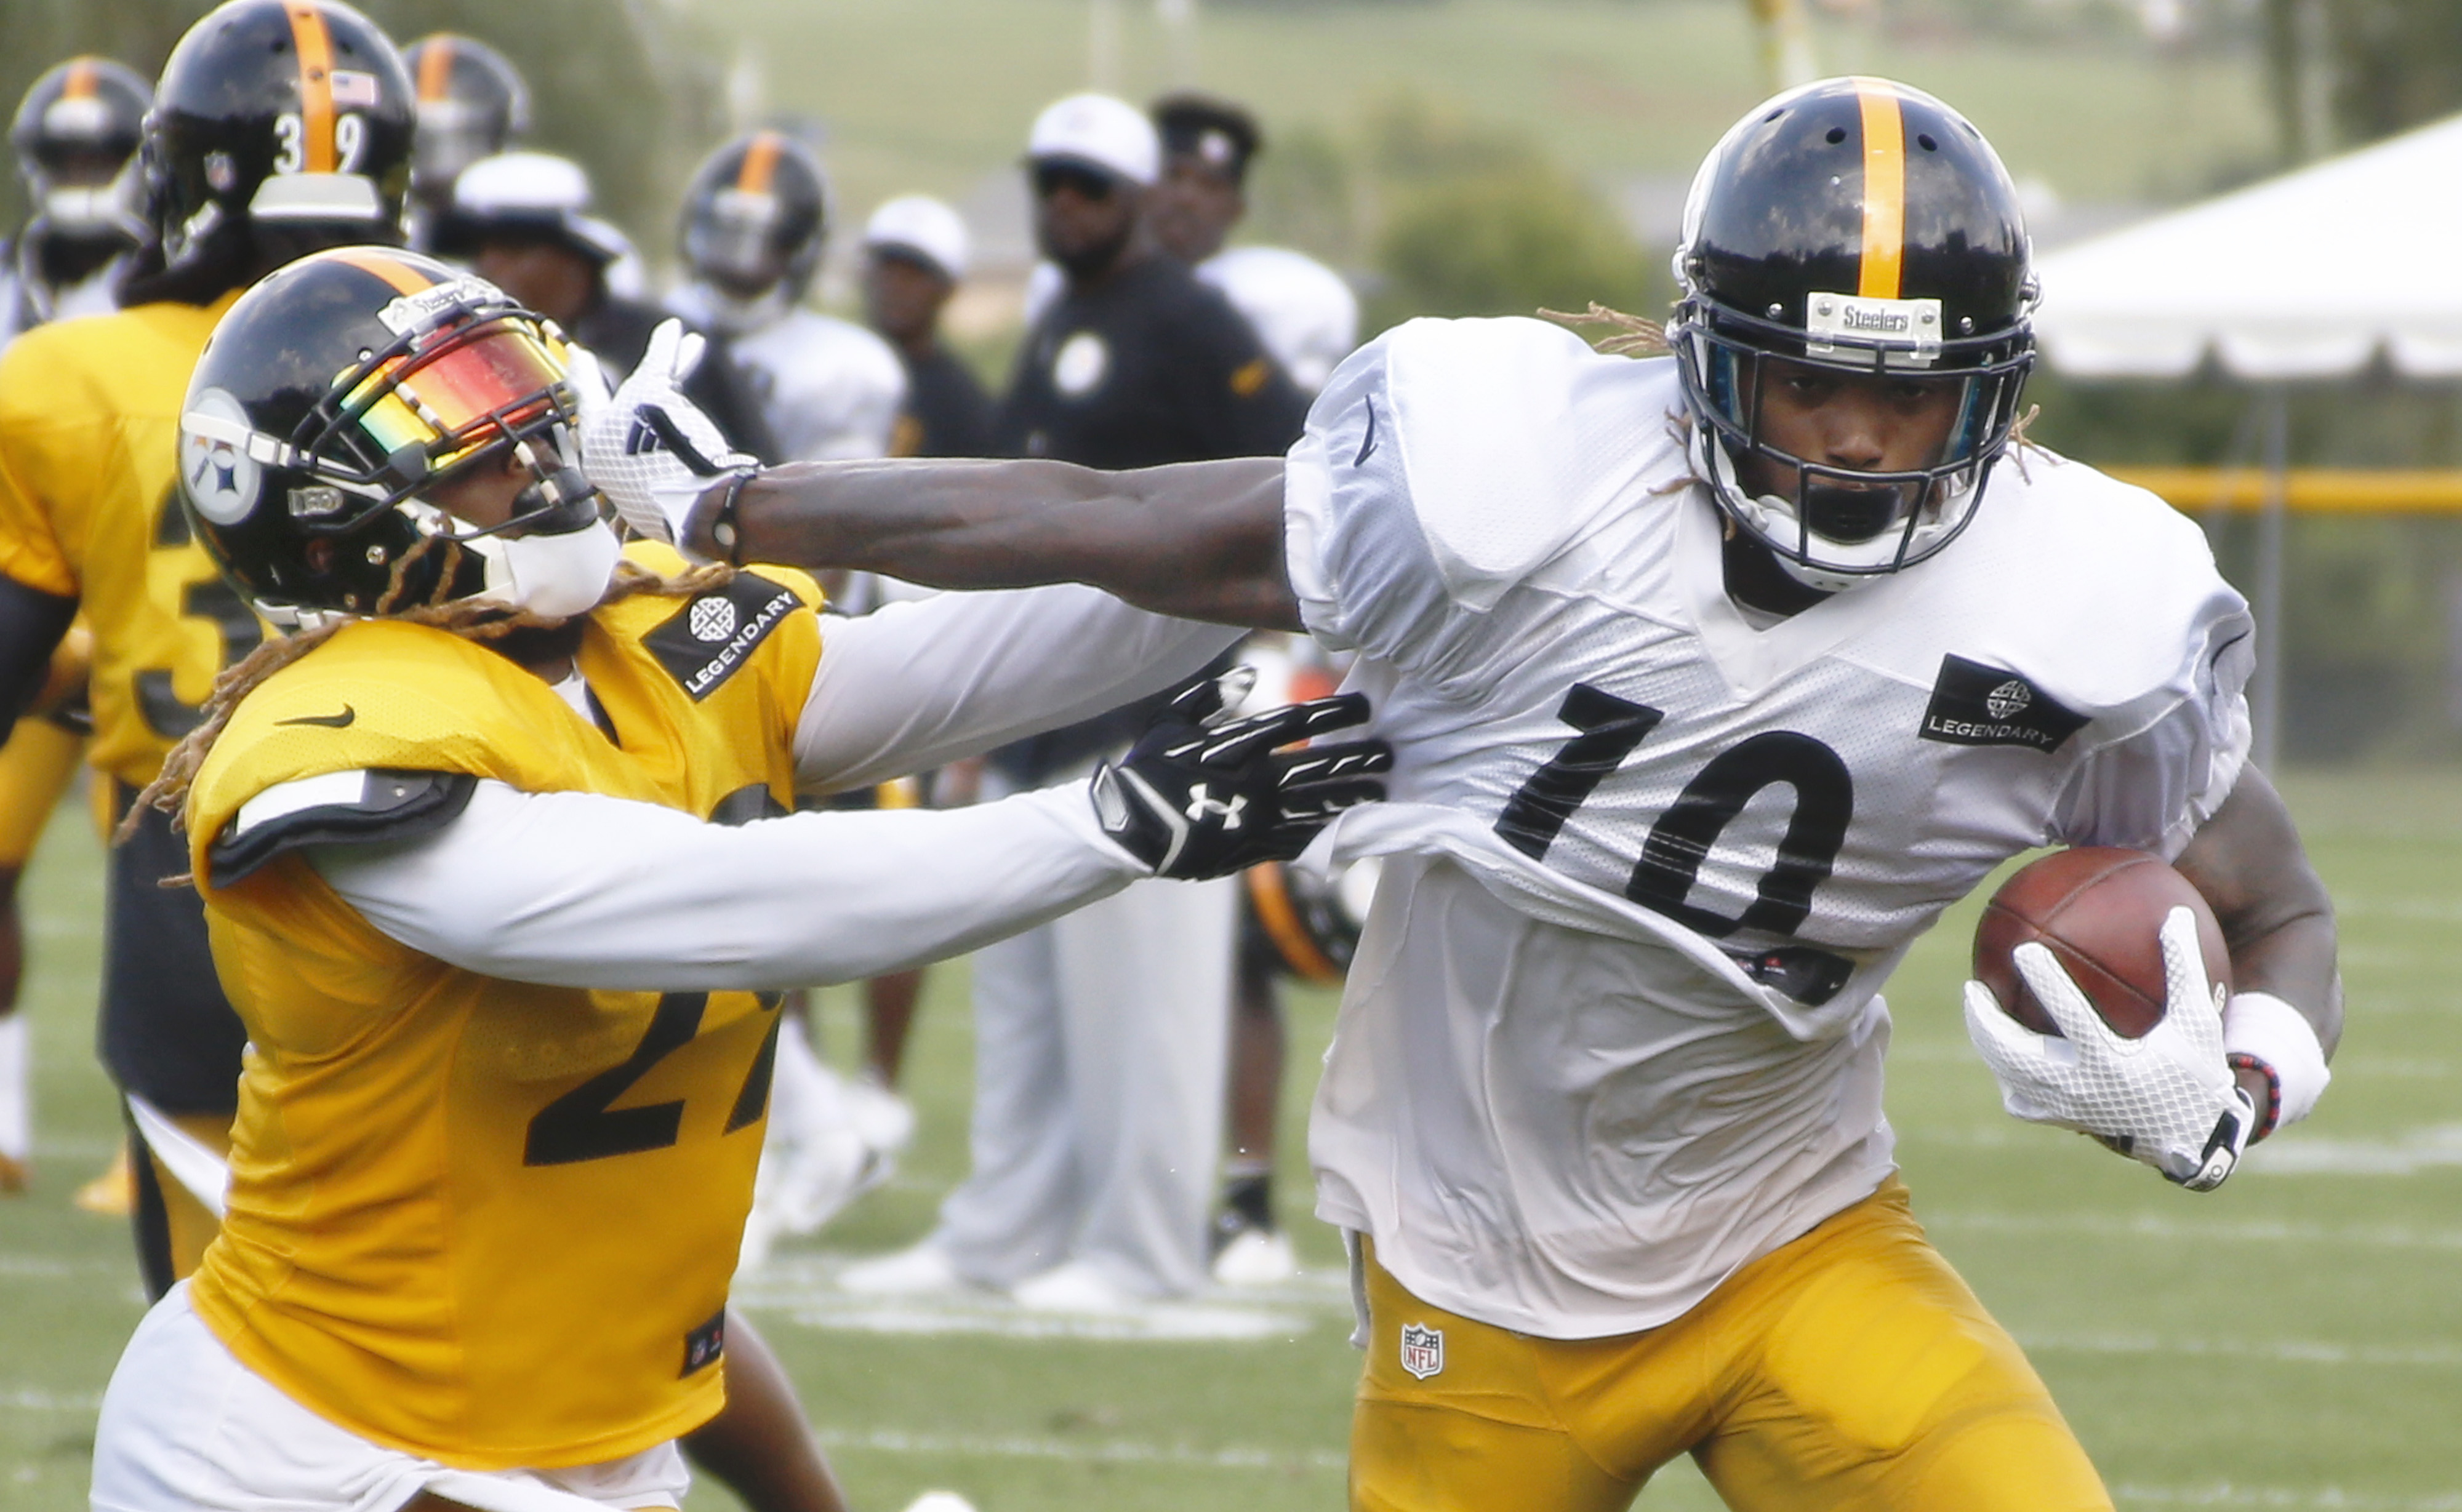 Pittsburgh Steelers wide receiver Martavis Bryant (10), right,  breaks away from strong safety Shamarko Thomas (29) after catching a pass at practice during NFL football training camp in Latrobe, Pa., Wednesday, July 29, 2015. (AP Photo/Keith Srakocic)